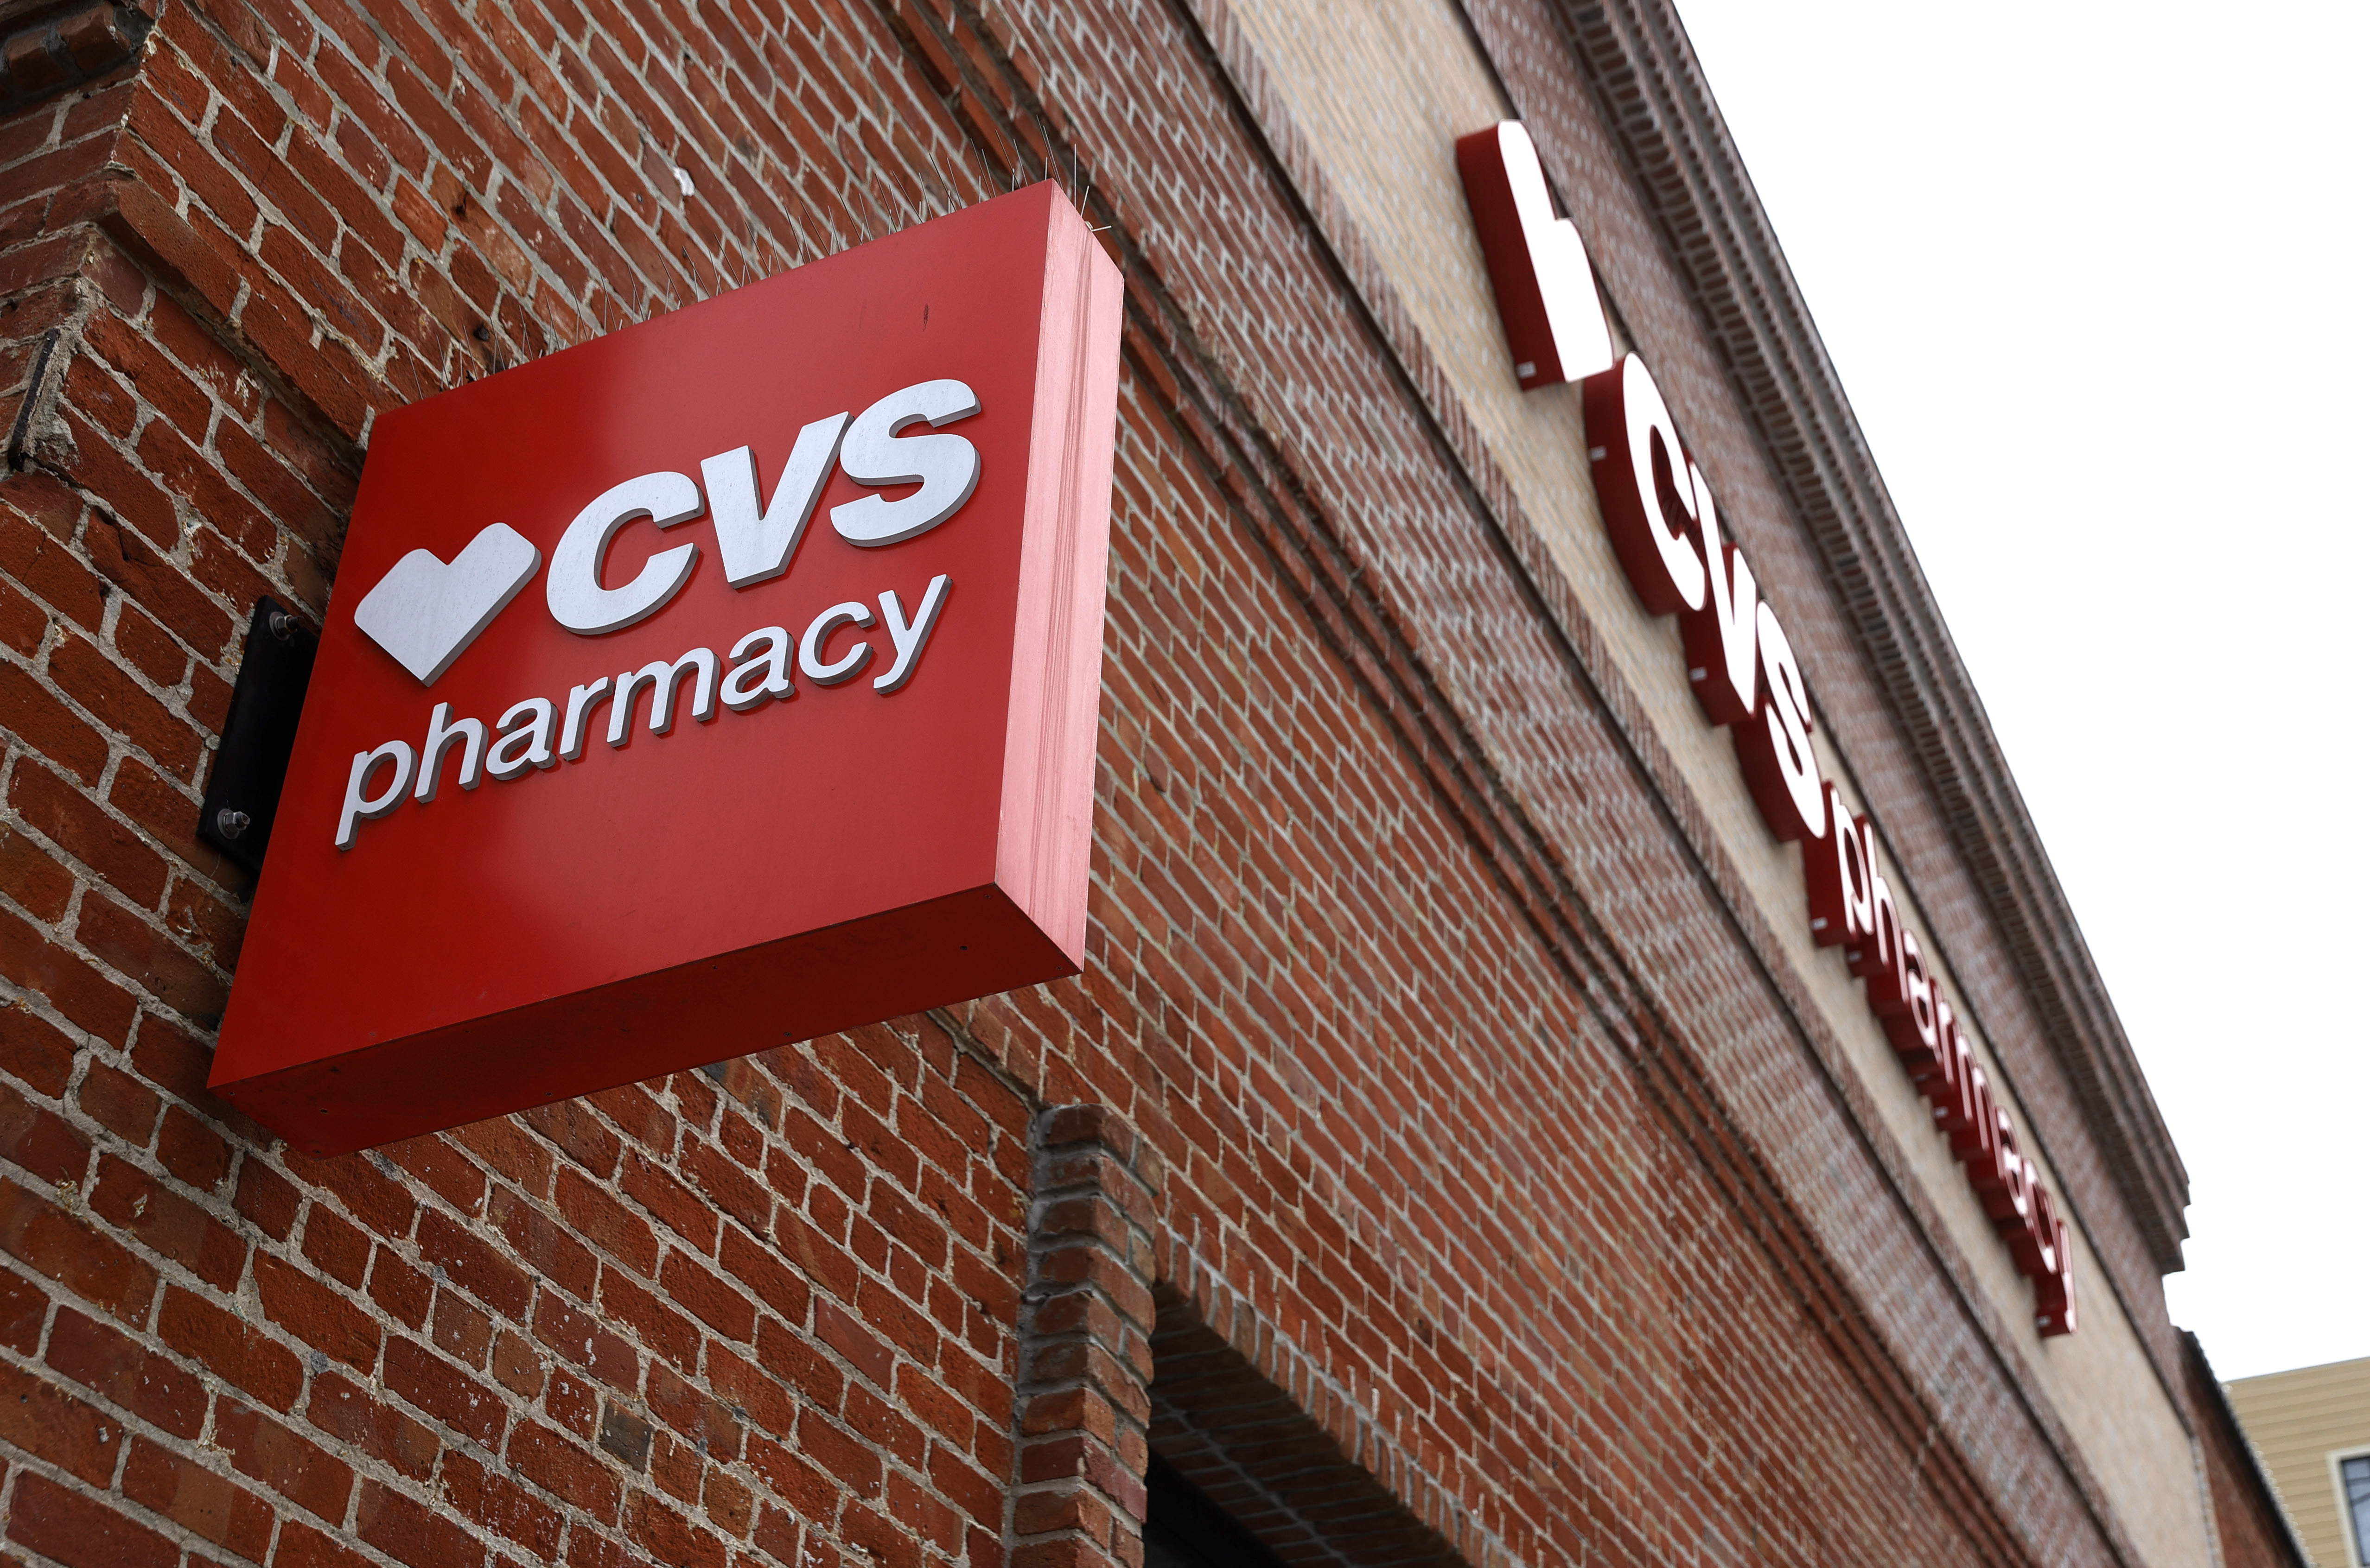 CVS says it also hold vaccine clinics in the most vulnerable communities it serves and send vaccination caravans into neighborhoods to make it easier for people to get their shots.